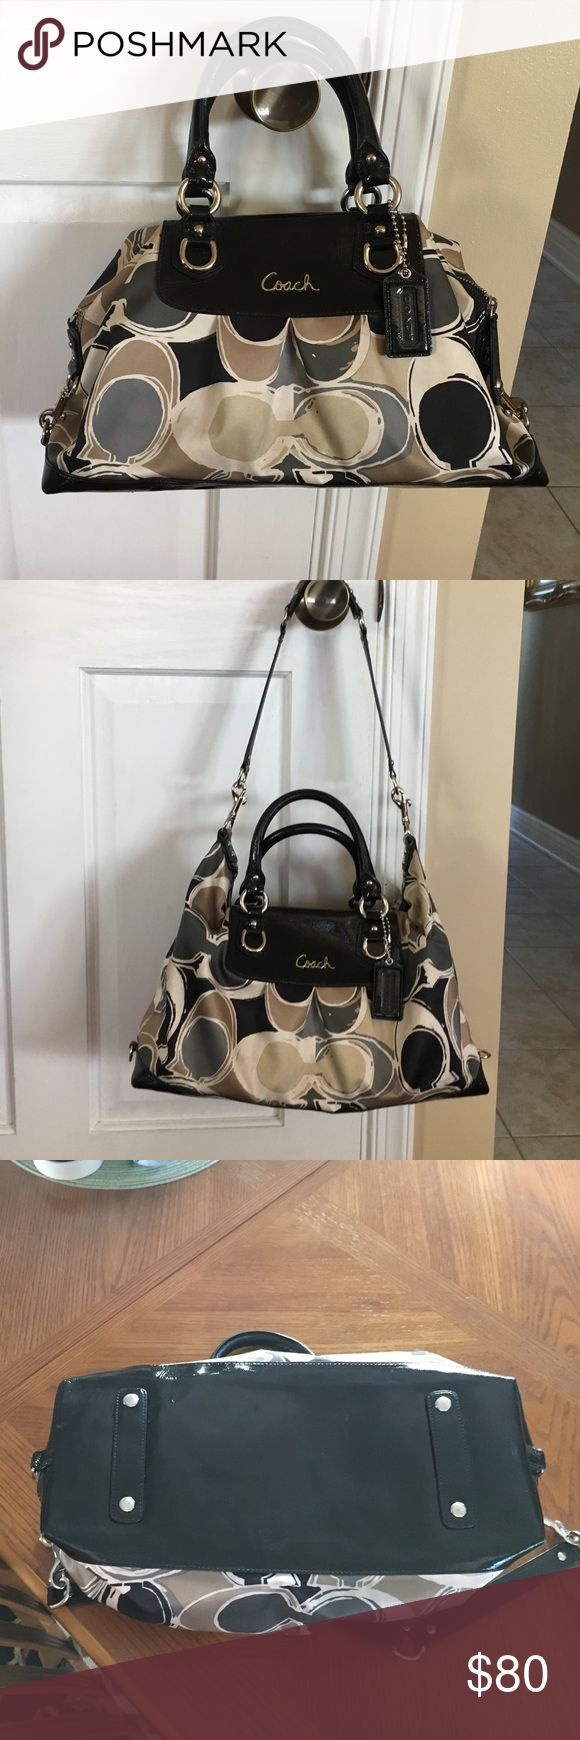 """Beautiful Coach satchel Beautiful Coach satchel black patent leather w/tan, cream and gray colors. Bought on here but it's a little too big for me. It's a beautiful bag though in great condition!!! Just a few small marks on the bottom which are hardly noticeable. Size is 15""""W 8""""H 7""""D. Coach Bags Satchels"""